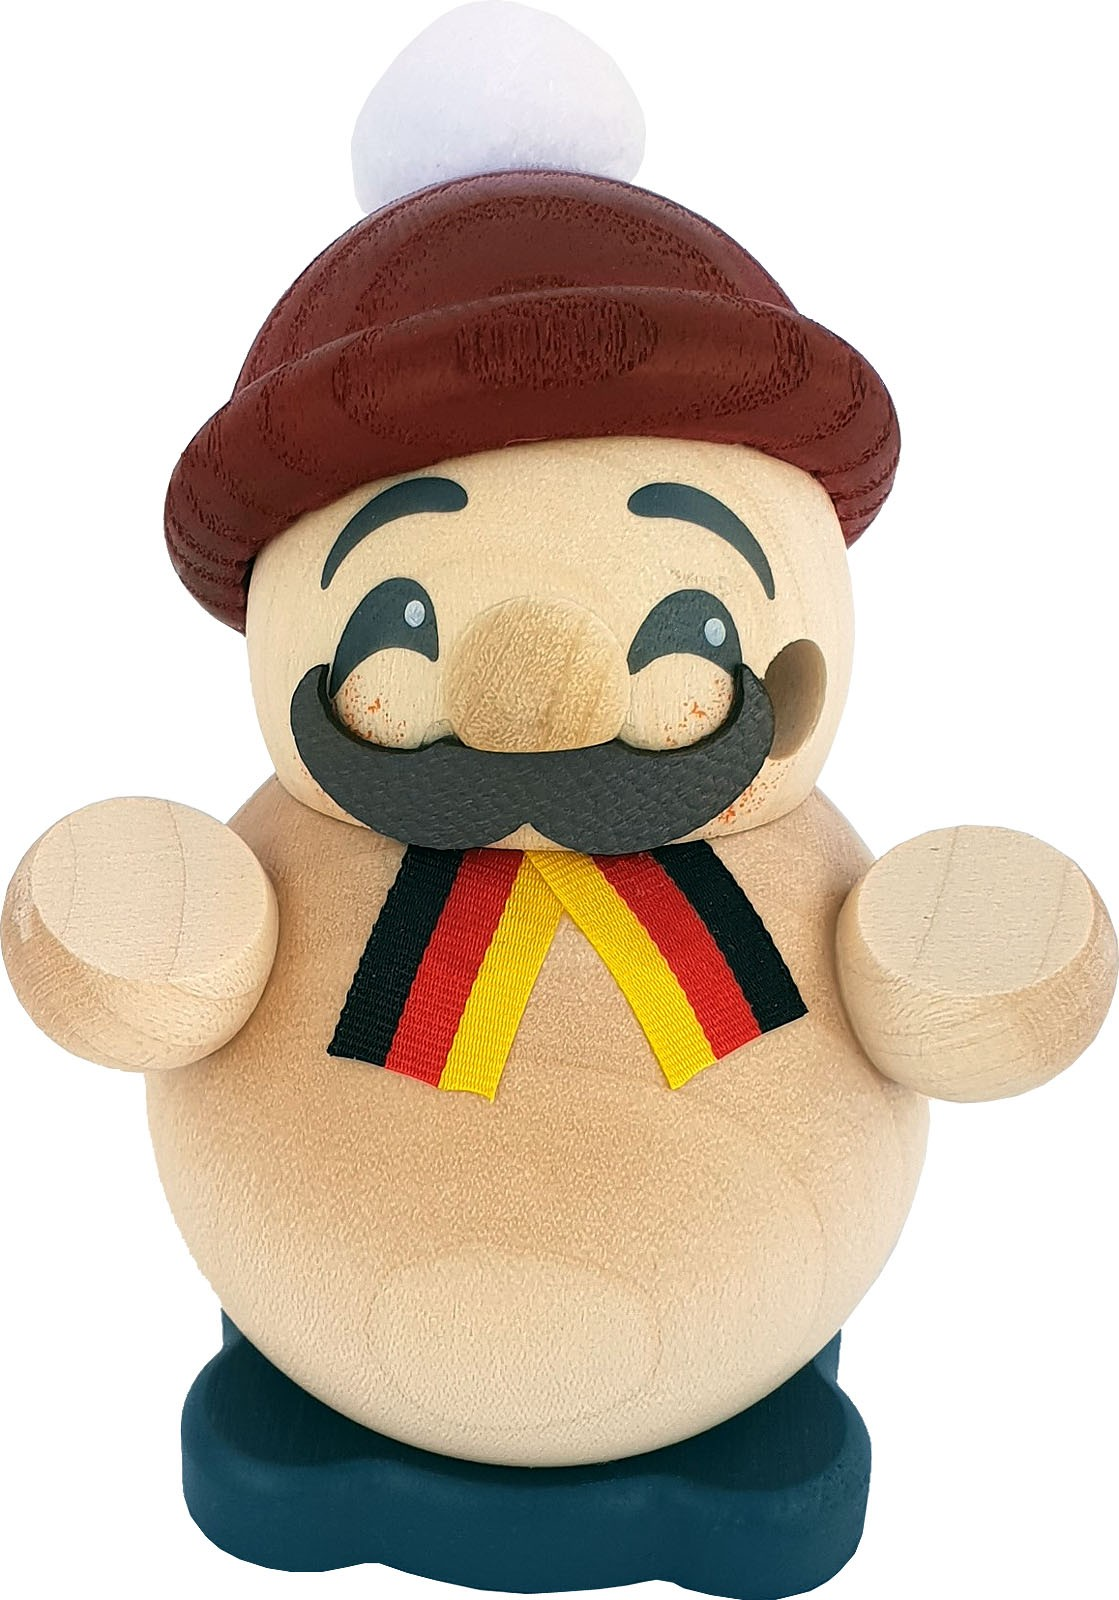 spheric incense smoker, small - German guy